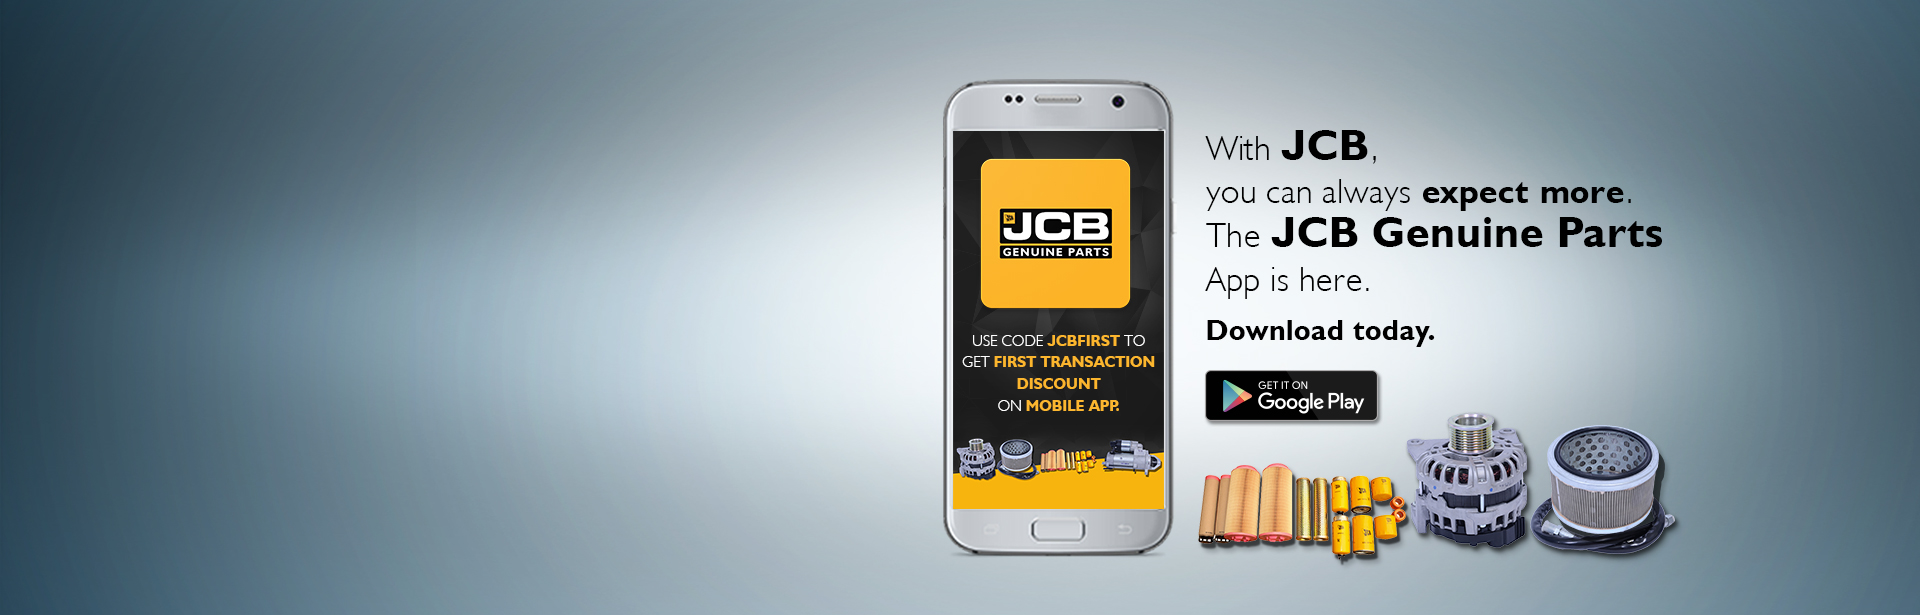 JCB GENUINE PARTS Jaipur